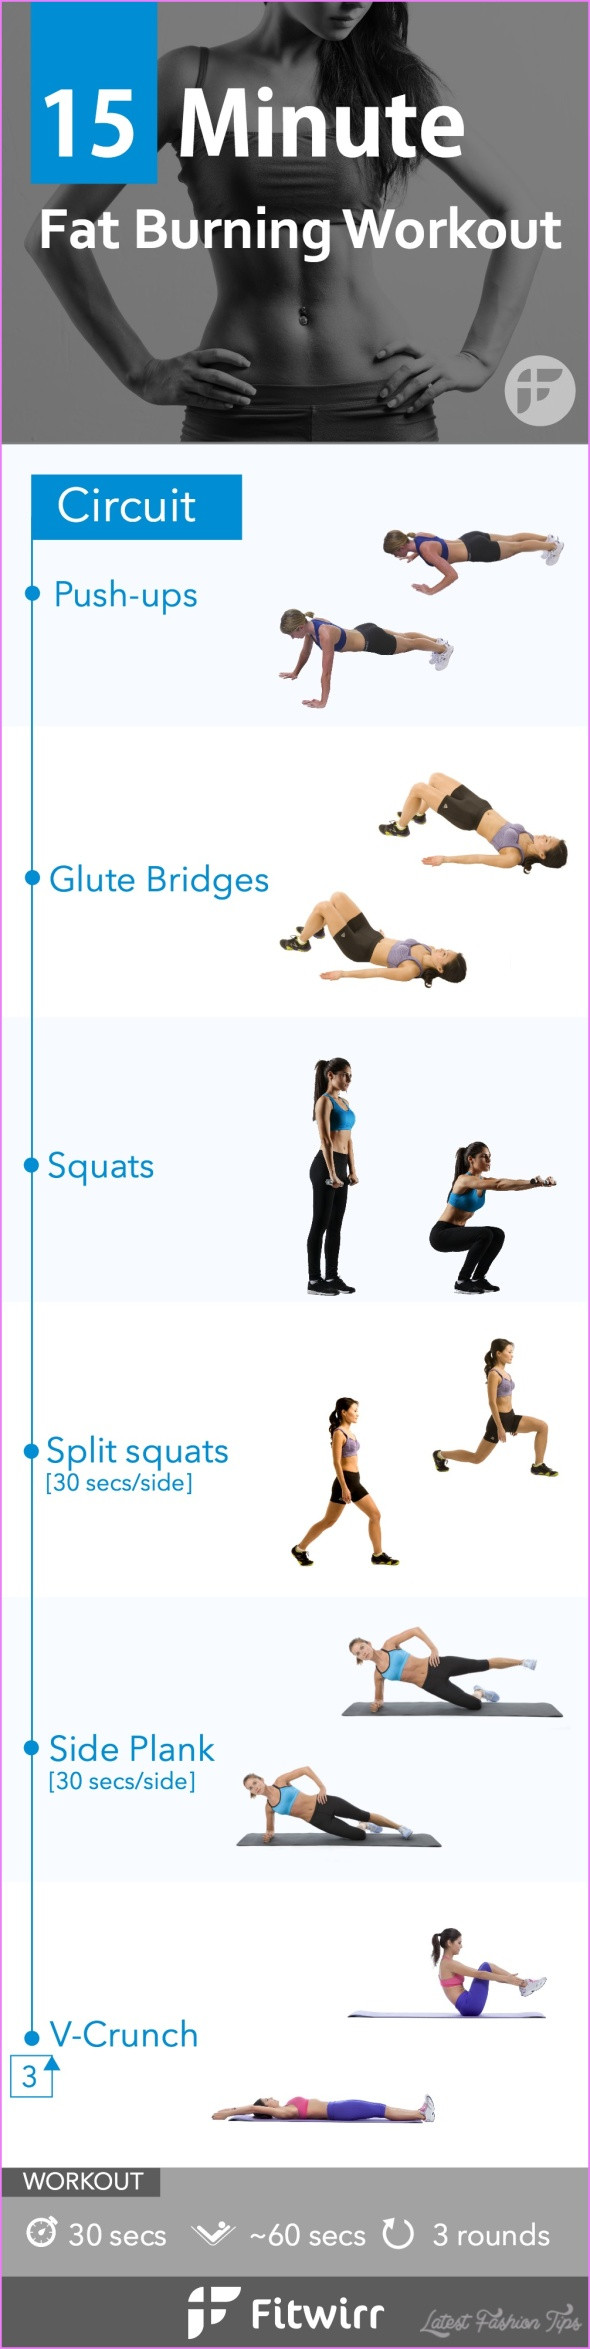 Weight Loss Exercises At Home For Women  Best Weight Loss Exercises For Women LatestFashionTips